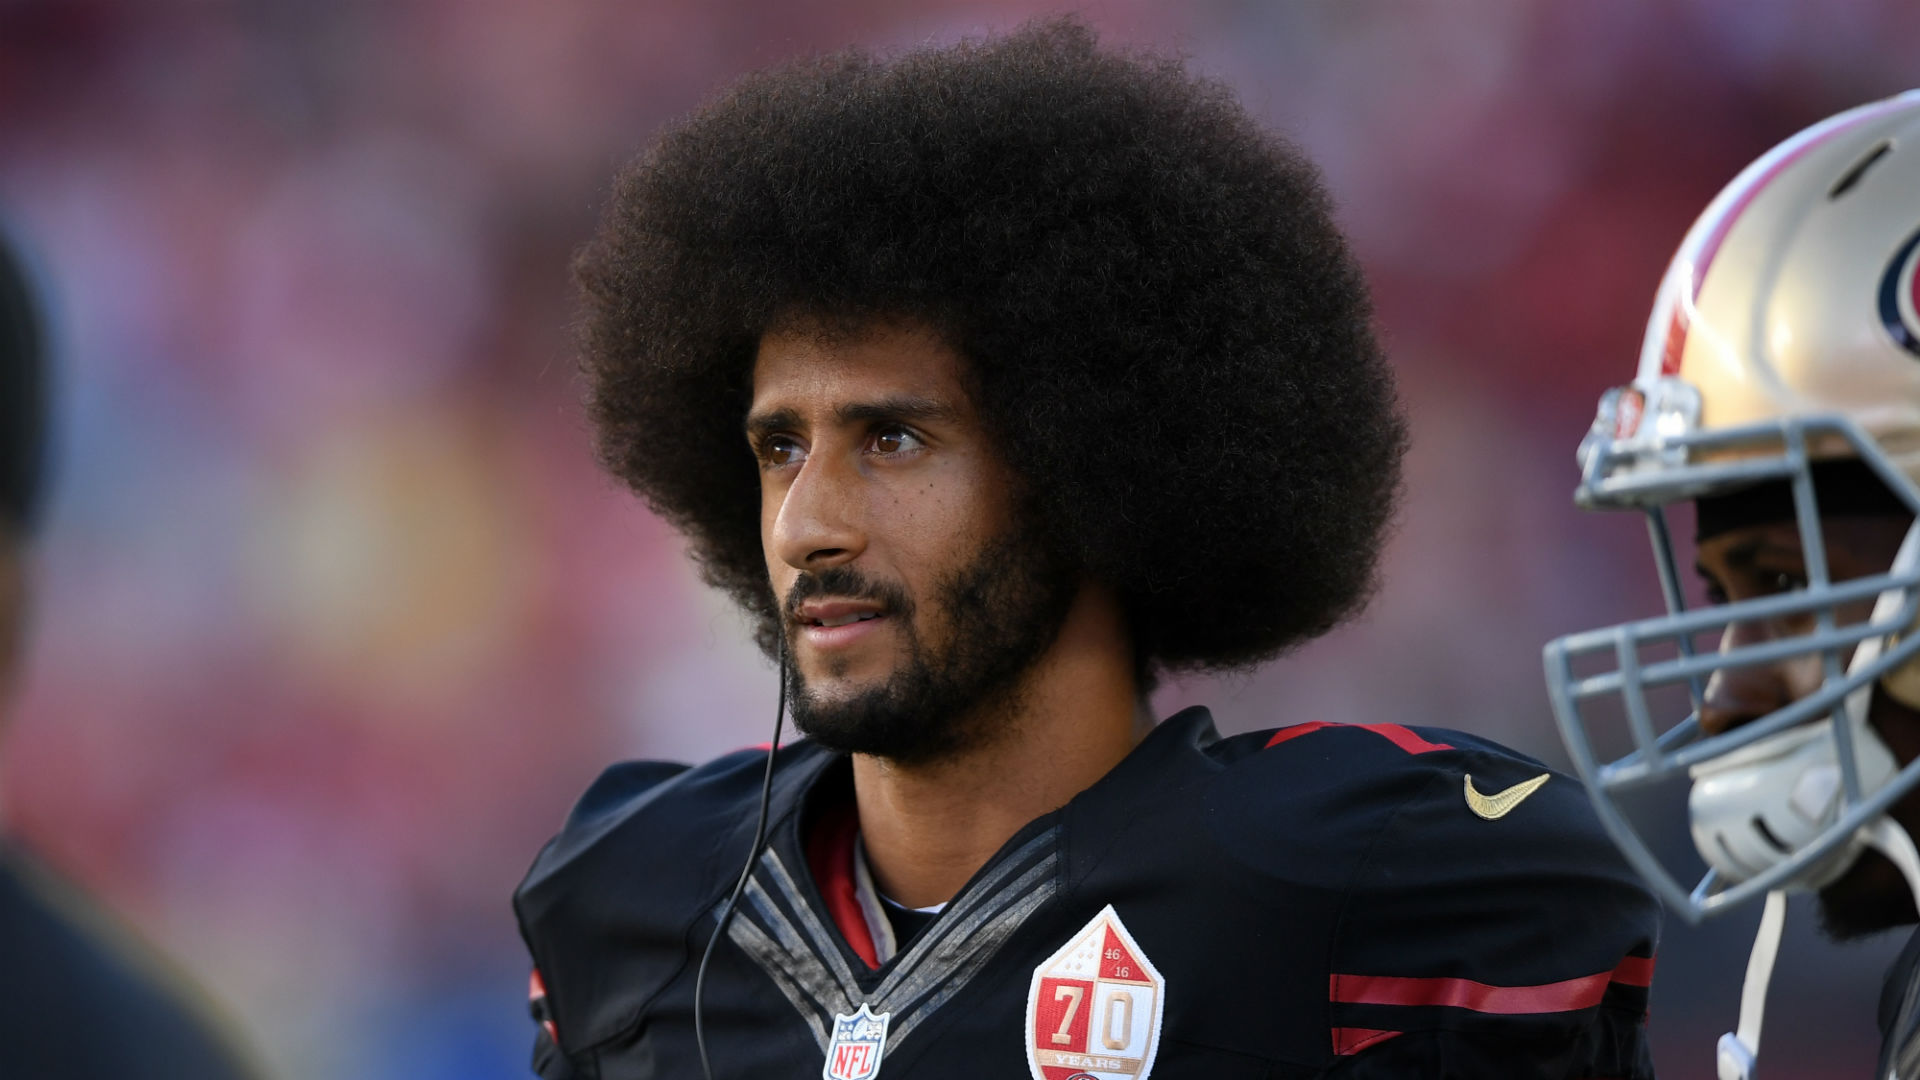 if you equated colin kaepernick voting to his cause, you never